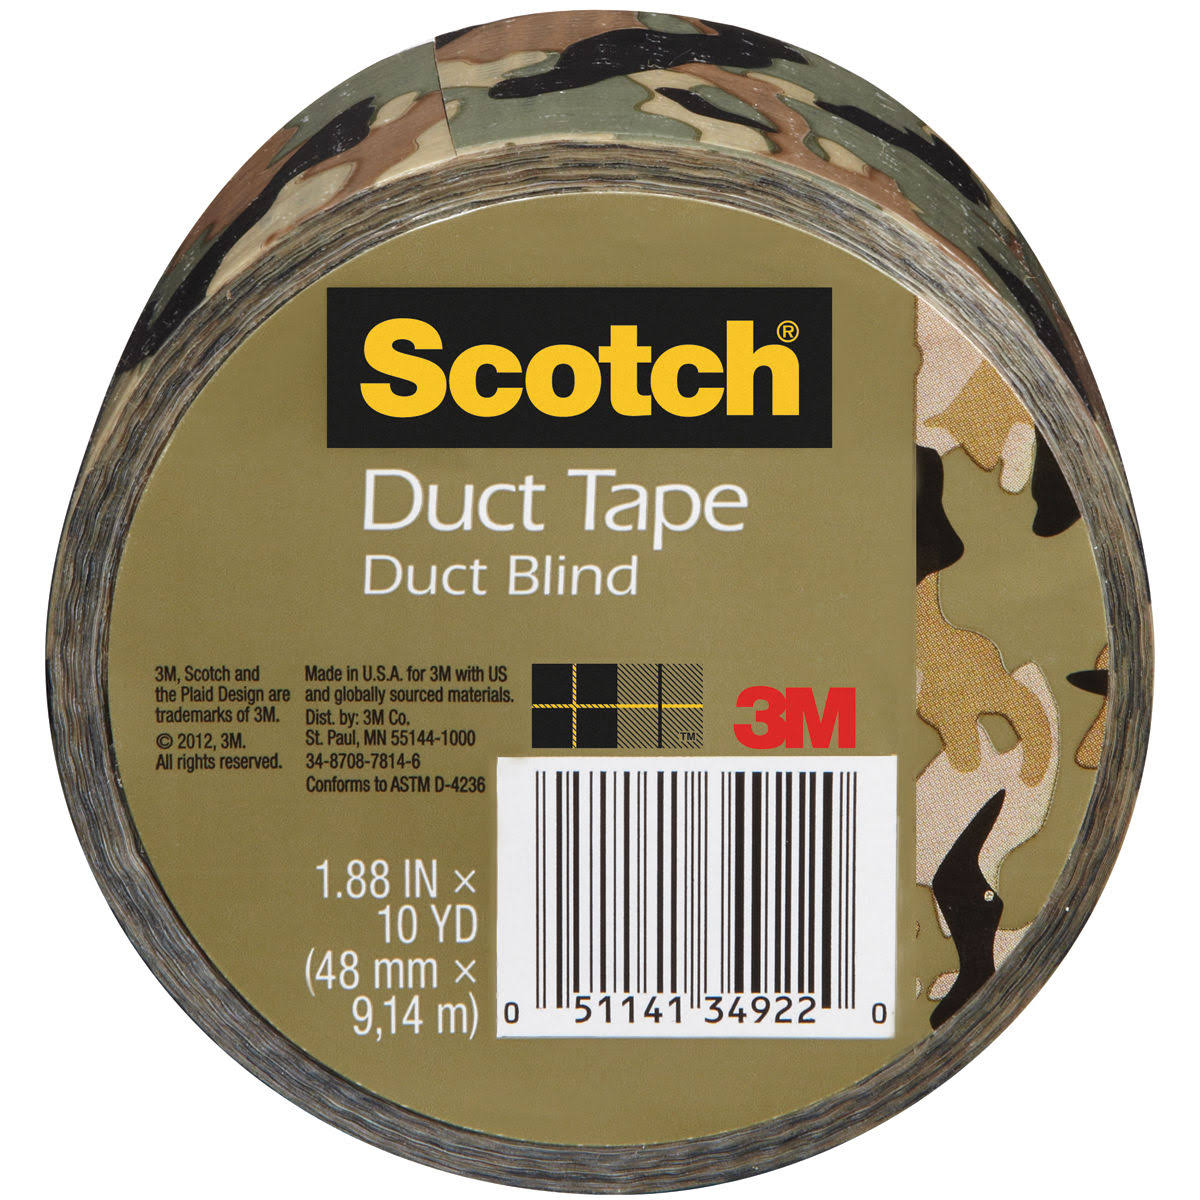 "3M Scotch Printed Duct Tape - Camo, 1.88"" x 10yds"